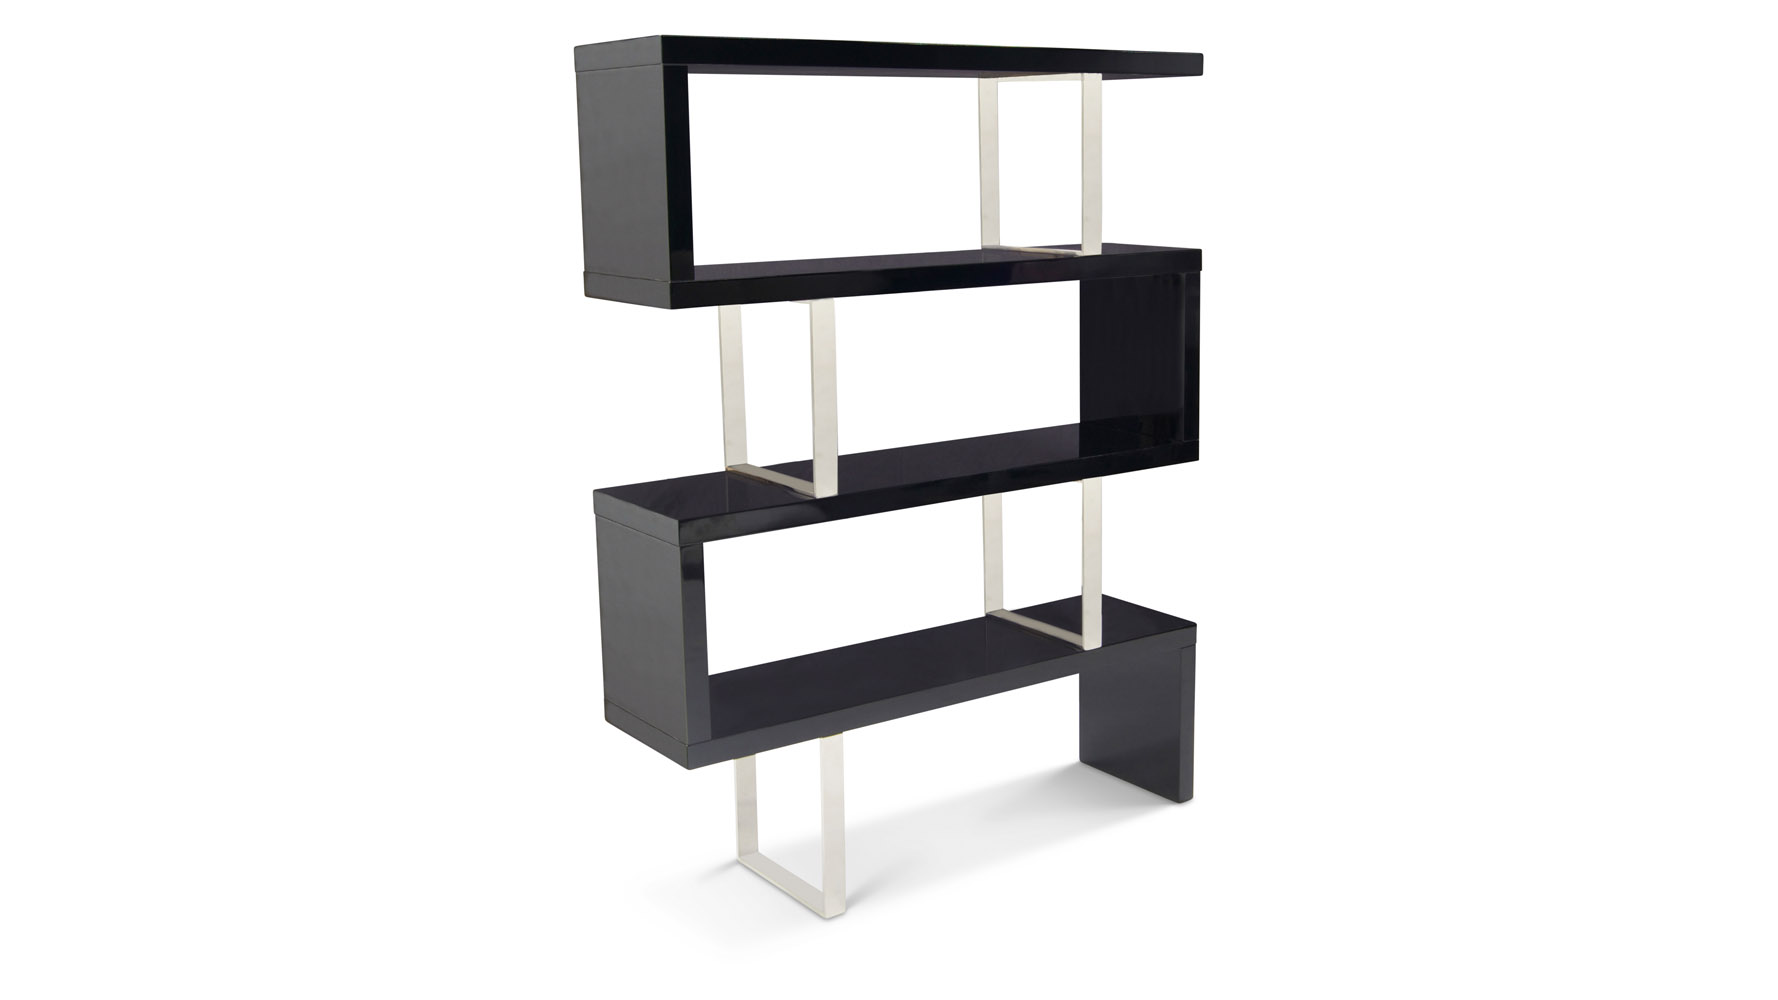 lester high gloss black and silver modern cube  inch bookcase  zurifurniture. lester high gloss black and silver modern cube  inch bookcase